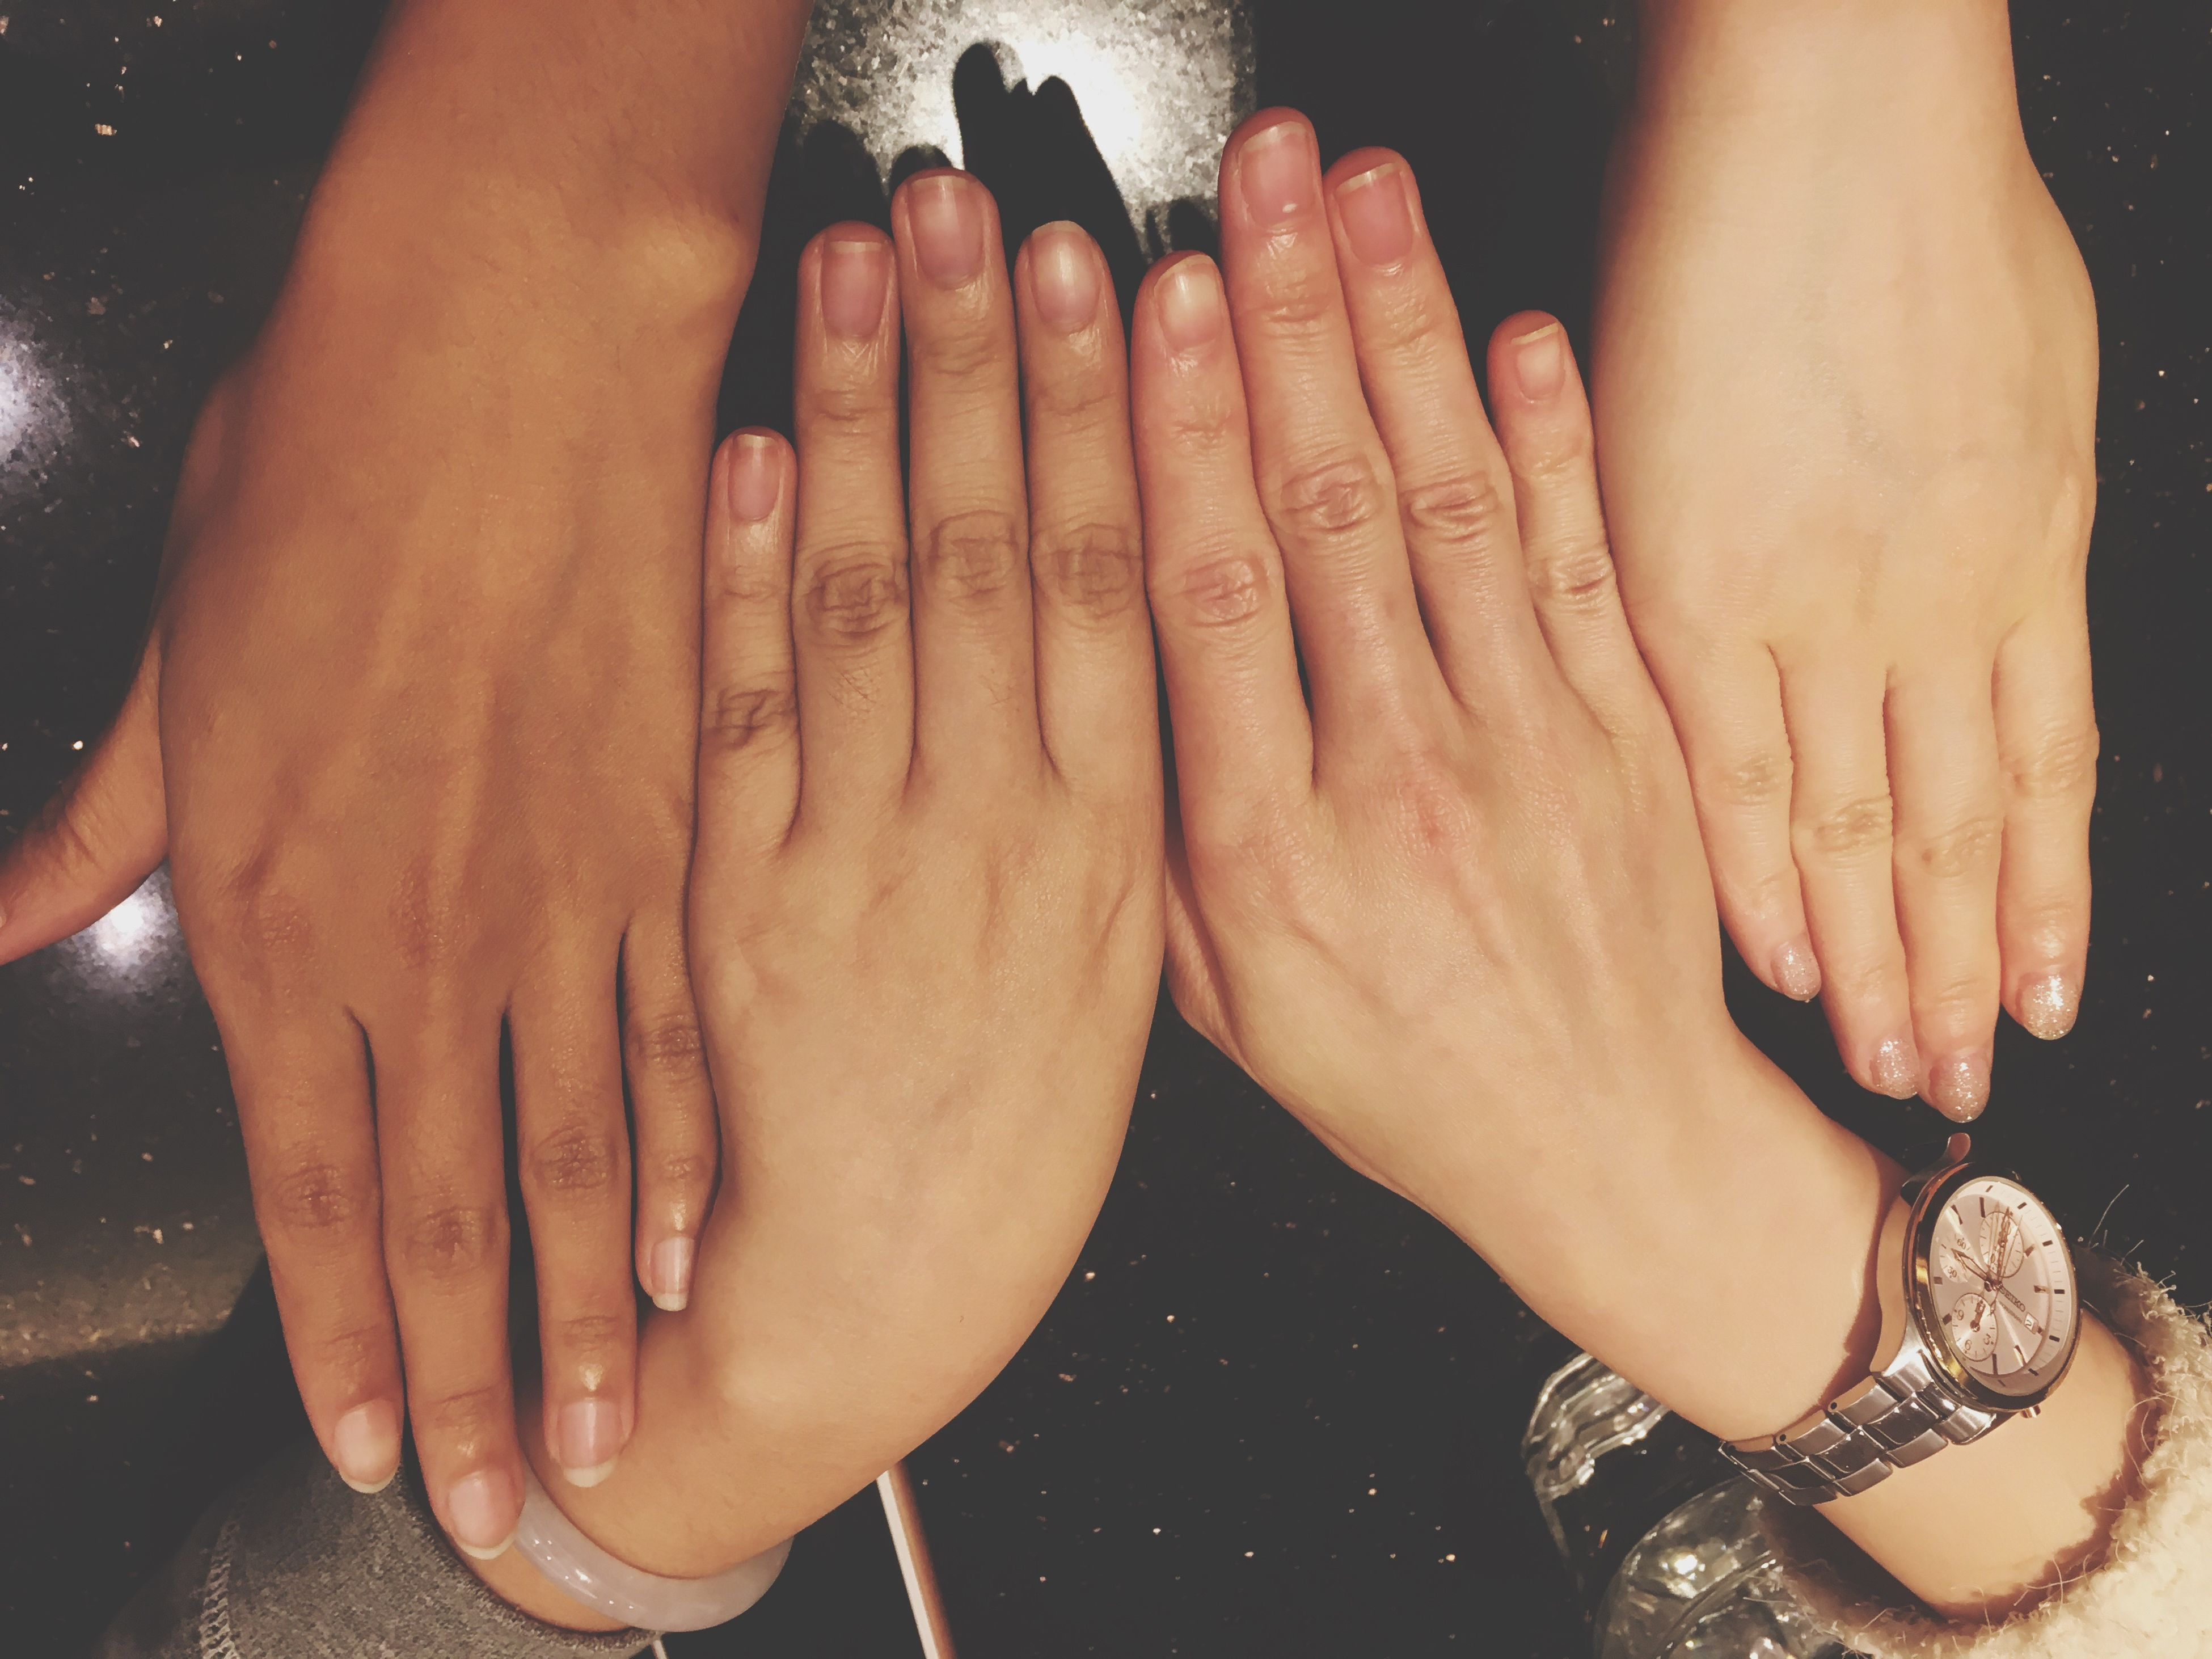 human hand, human body part, togetherness, lifestyles, adults only, close-up, real people, people, adult, indoors, day